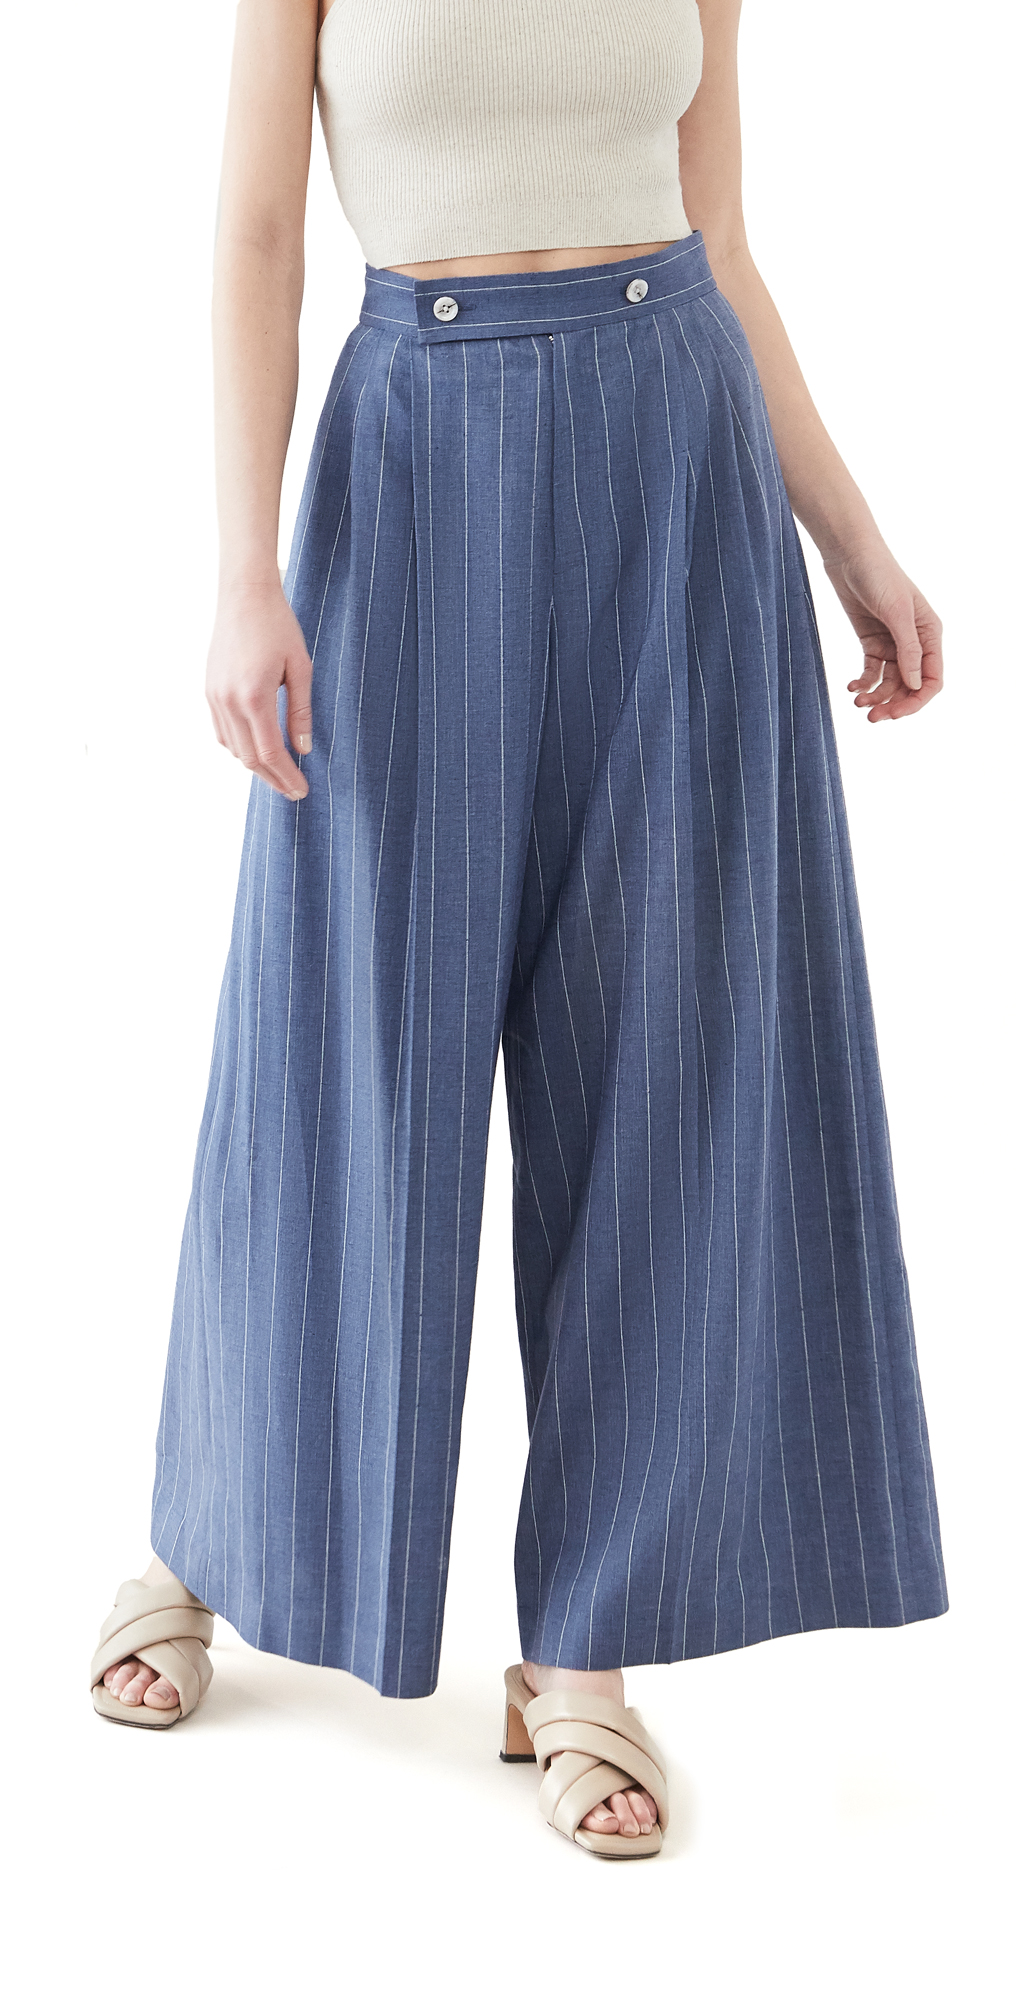 Adeam Hakama Pants